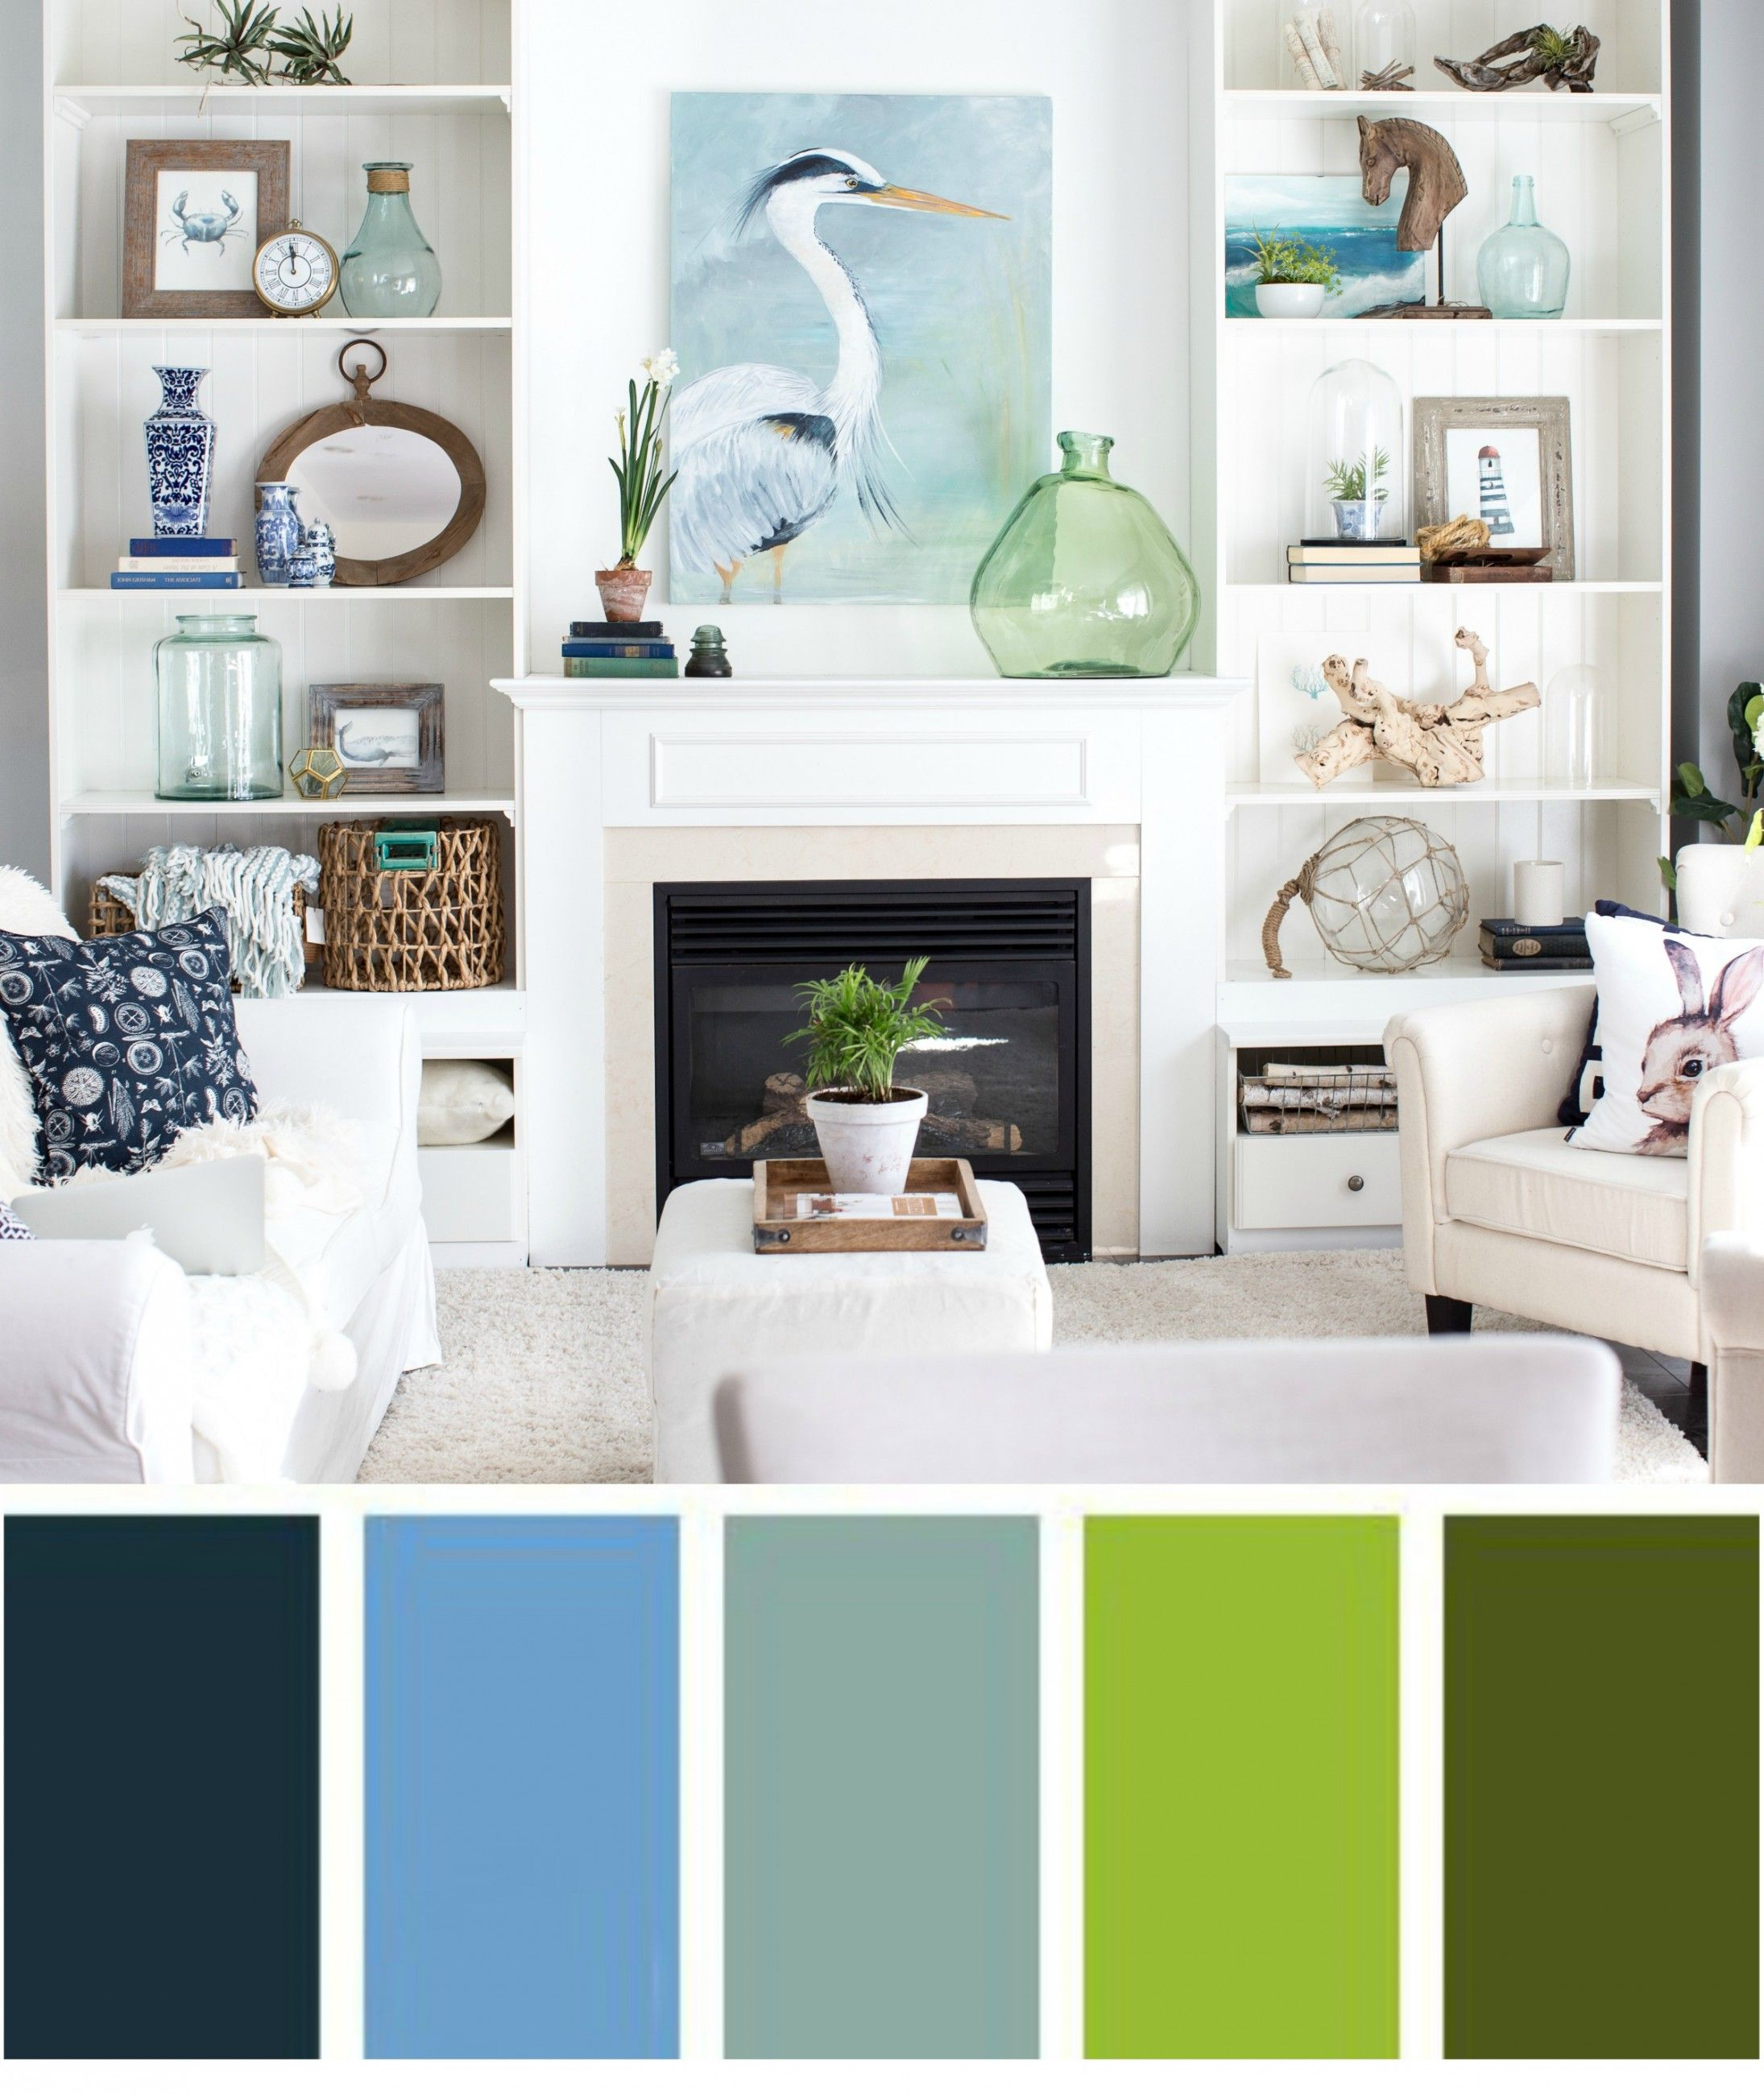 Home interior design color schemes  reasons your home decor does not look cohesive  interiors